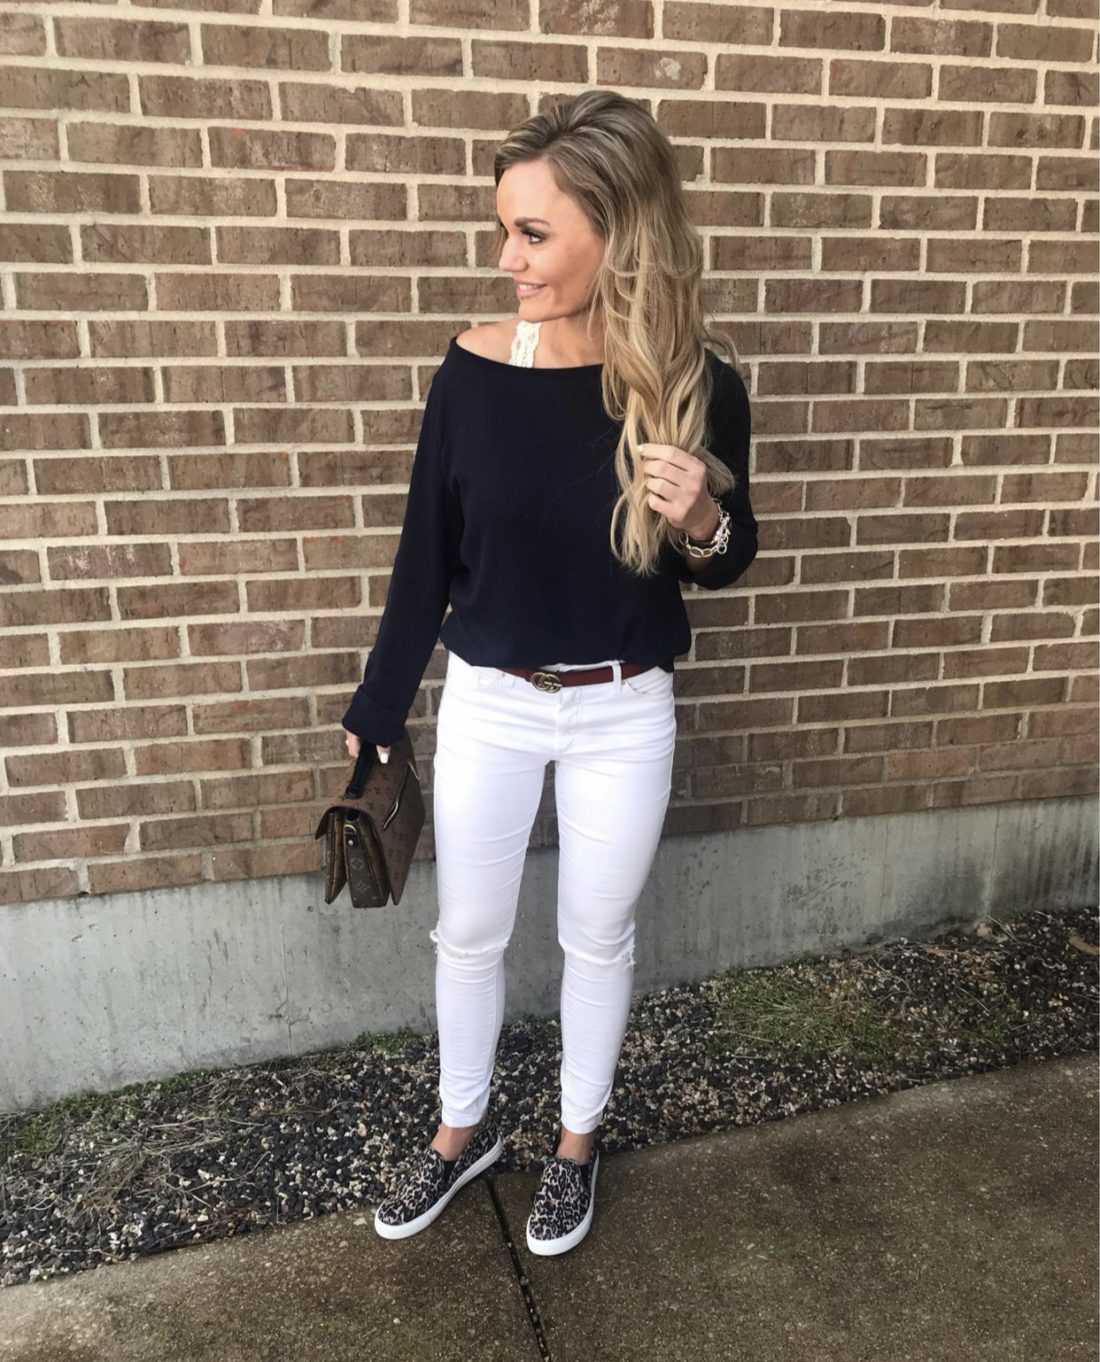 Spring and Summer Shoes & Outfit Ideas.